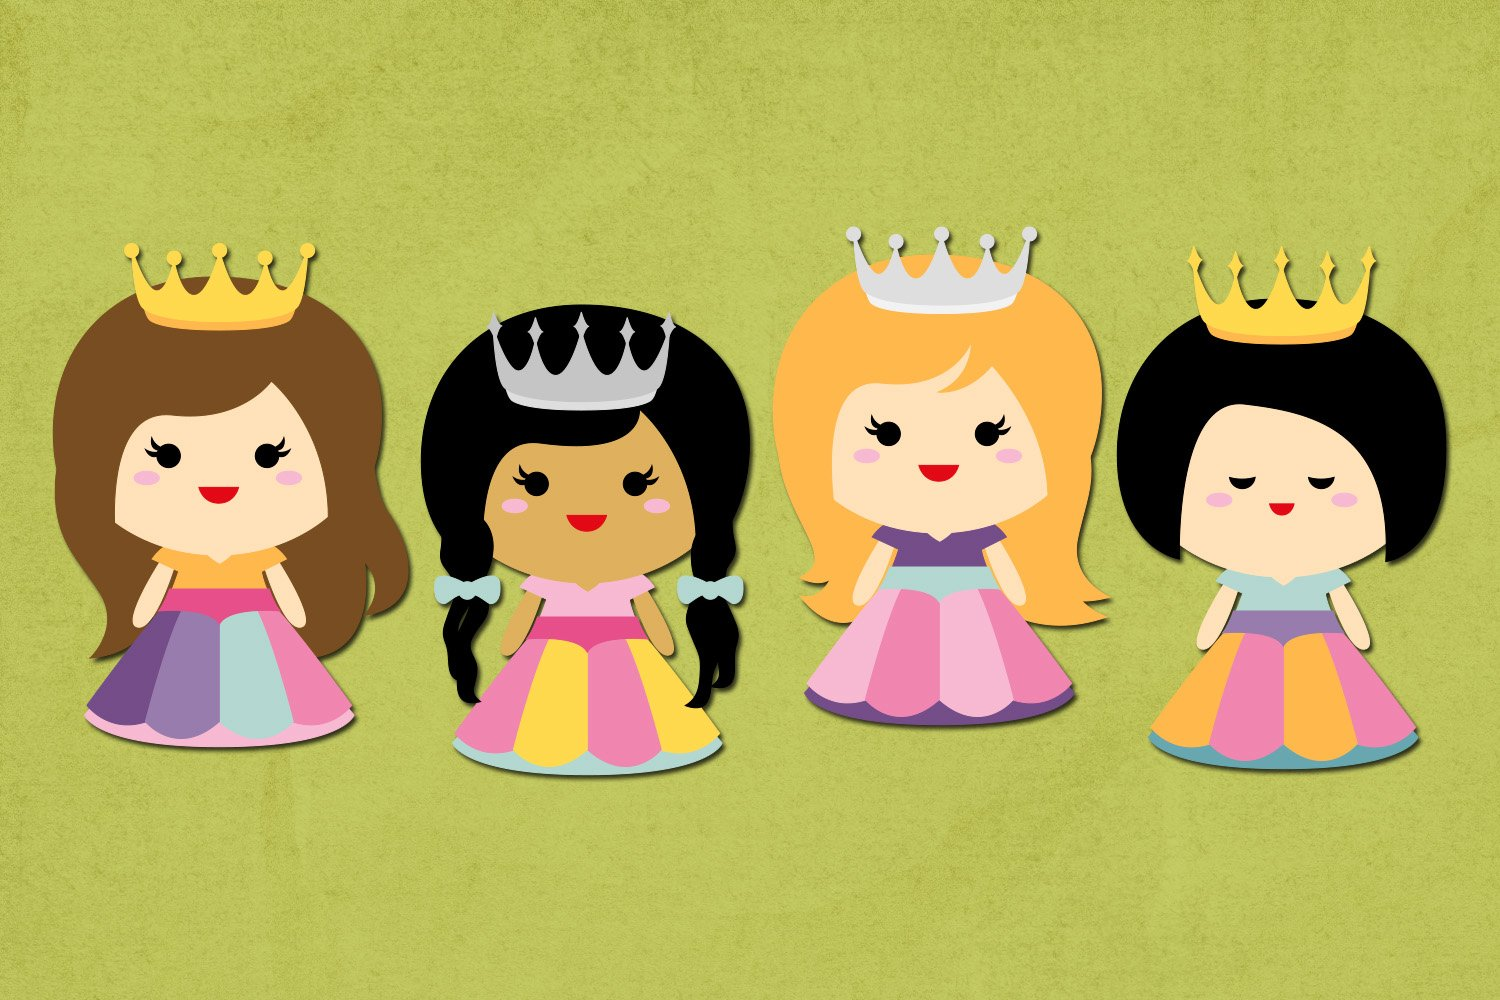 Princess and Castle Illustrations Clip Art example image 3